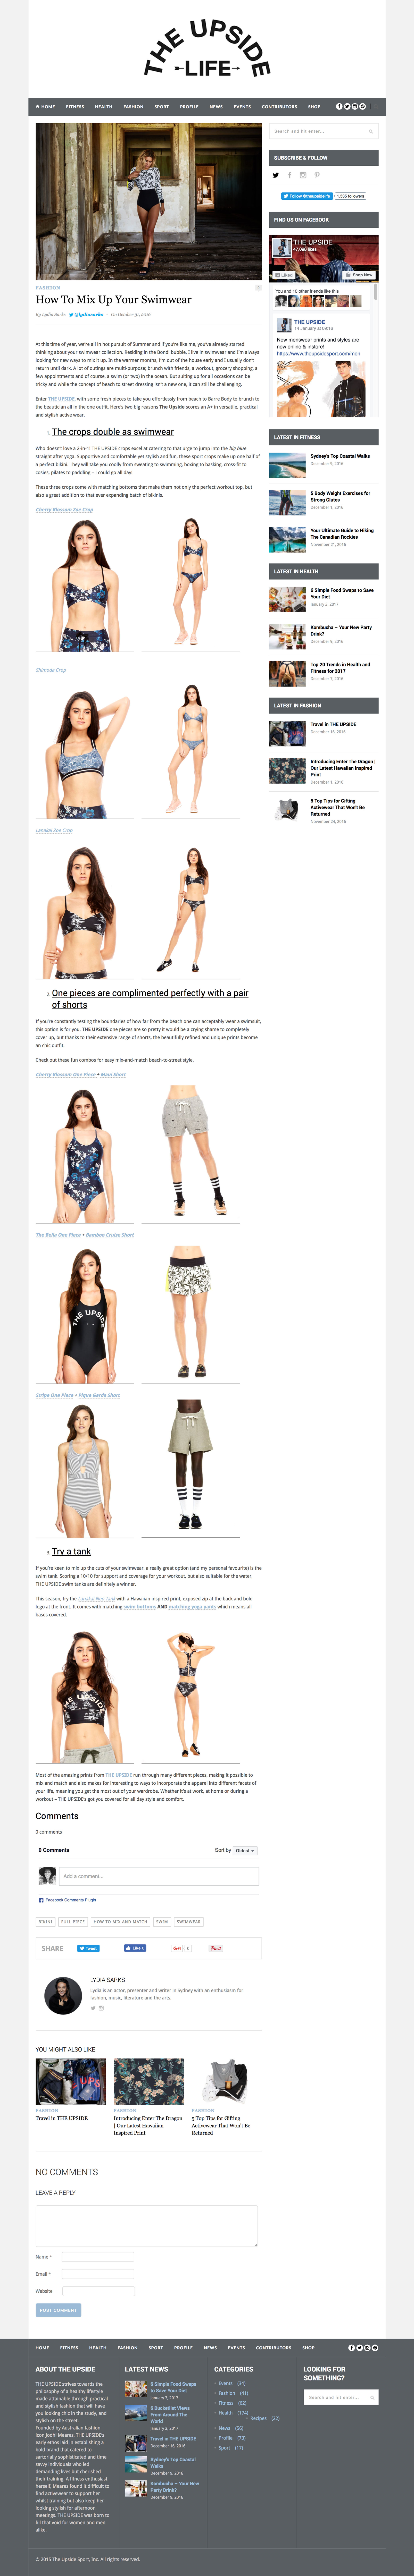 screencapture-blog-theupsidesport-how-to-mix-up-your-swimwear-1484604323881 copy.jpg